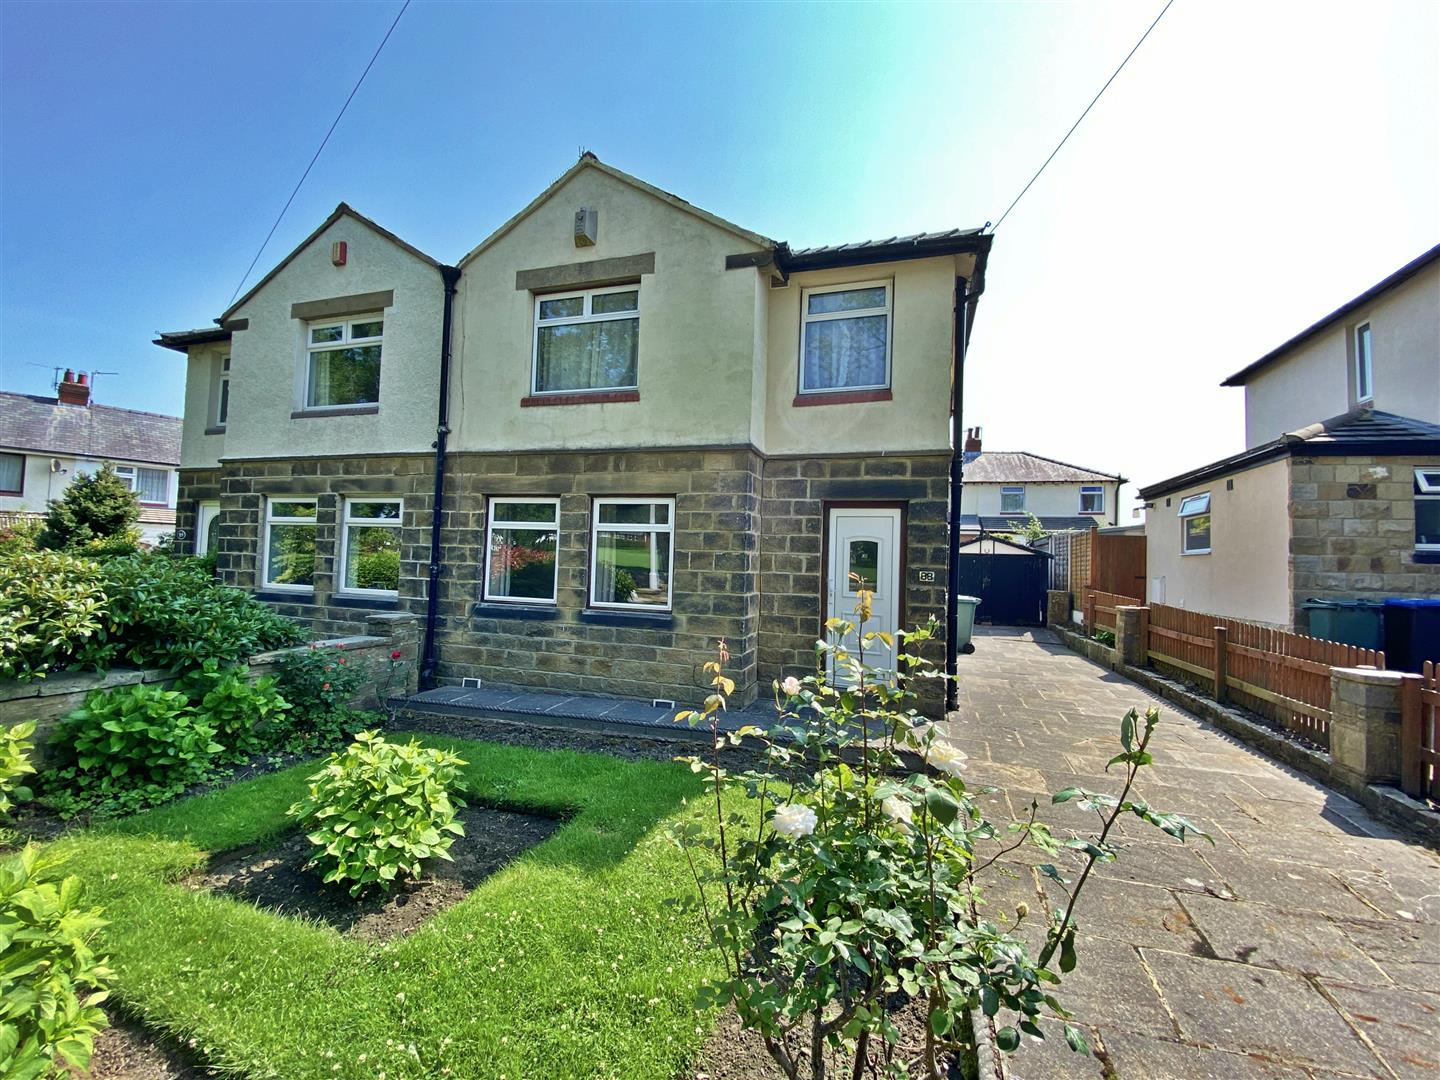 Leathley Avenue, Menston, LS29 6DN